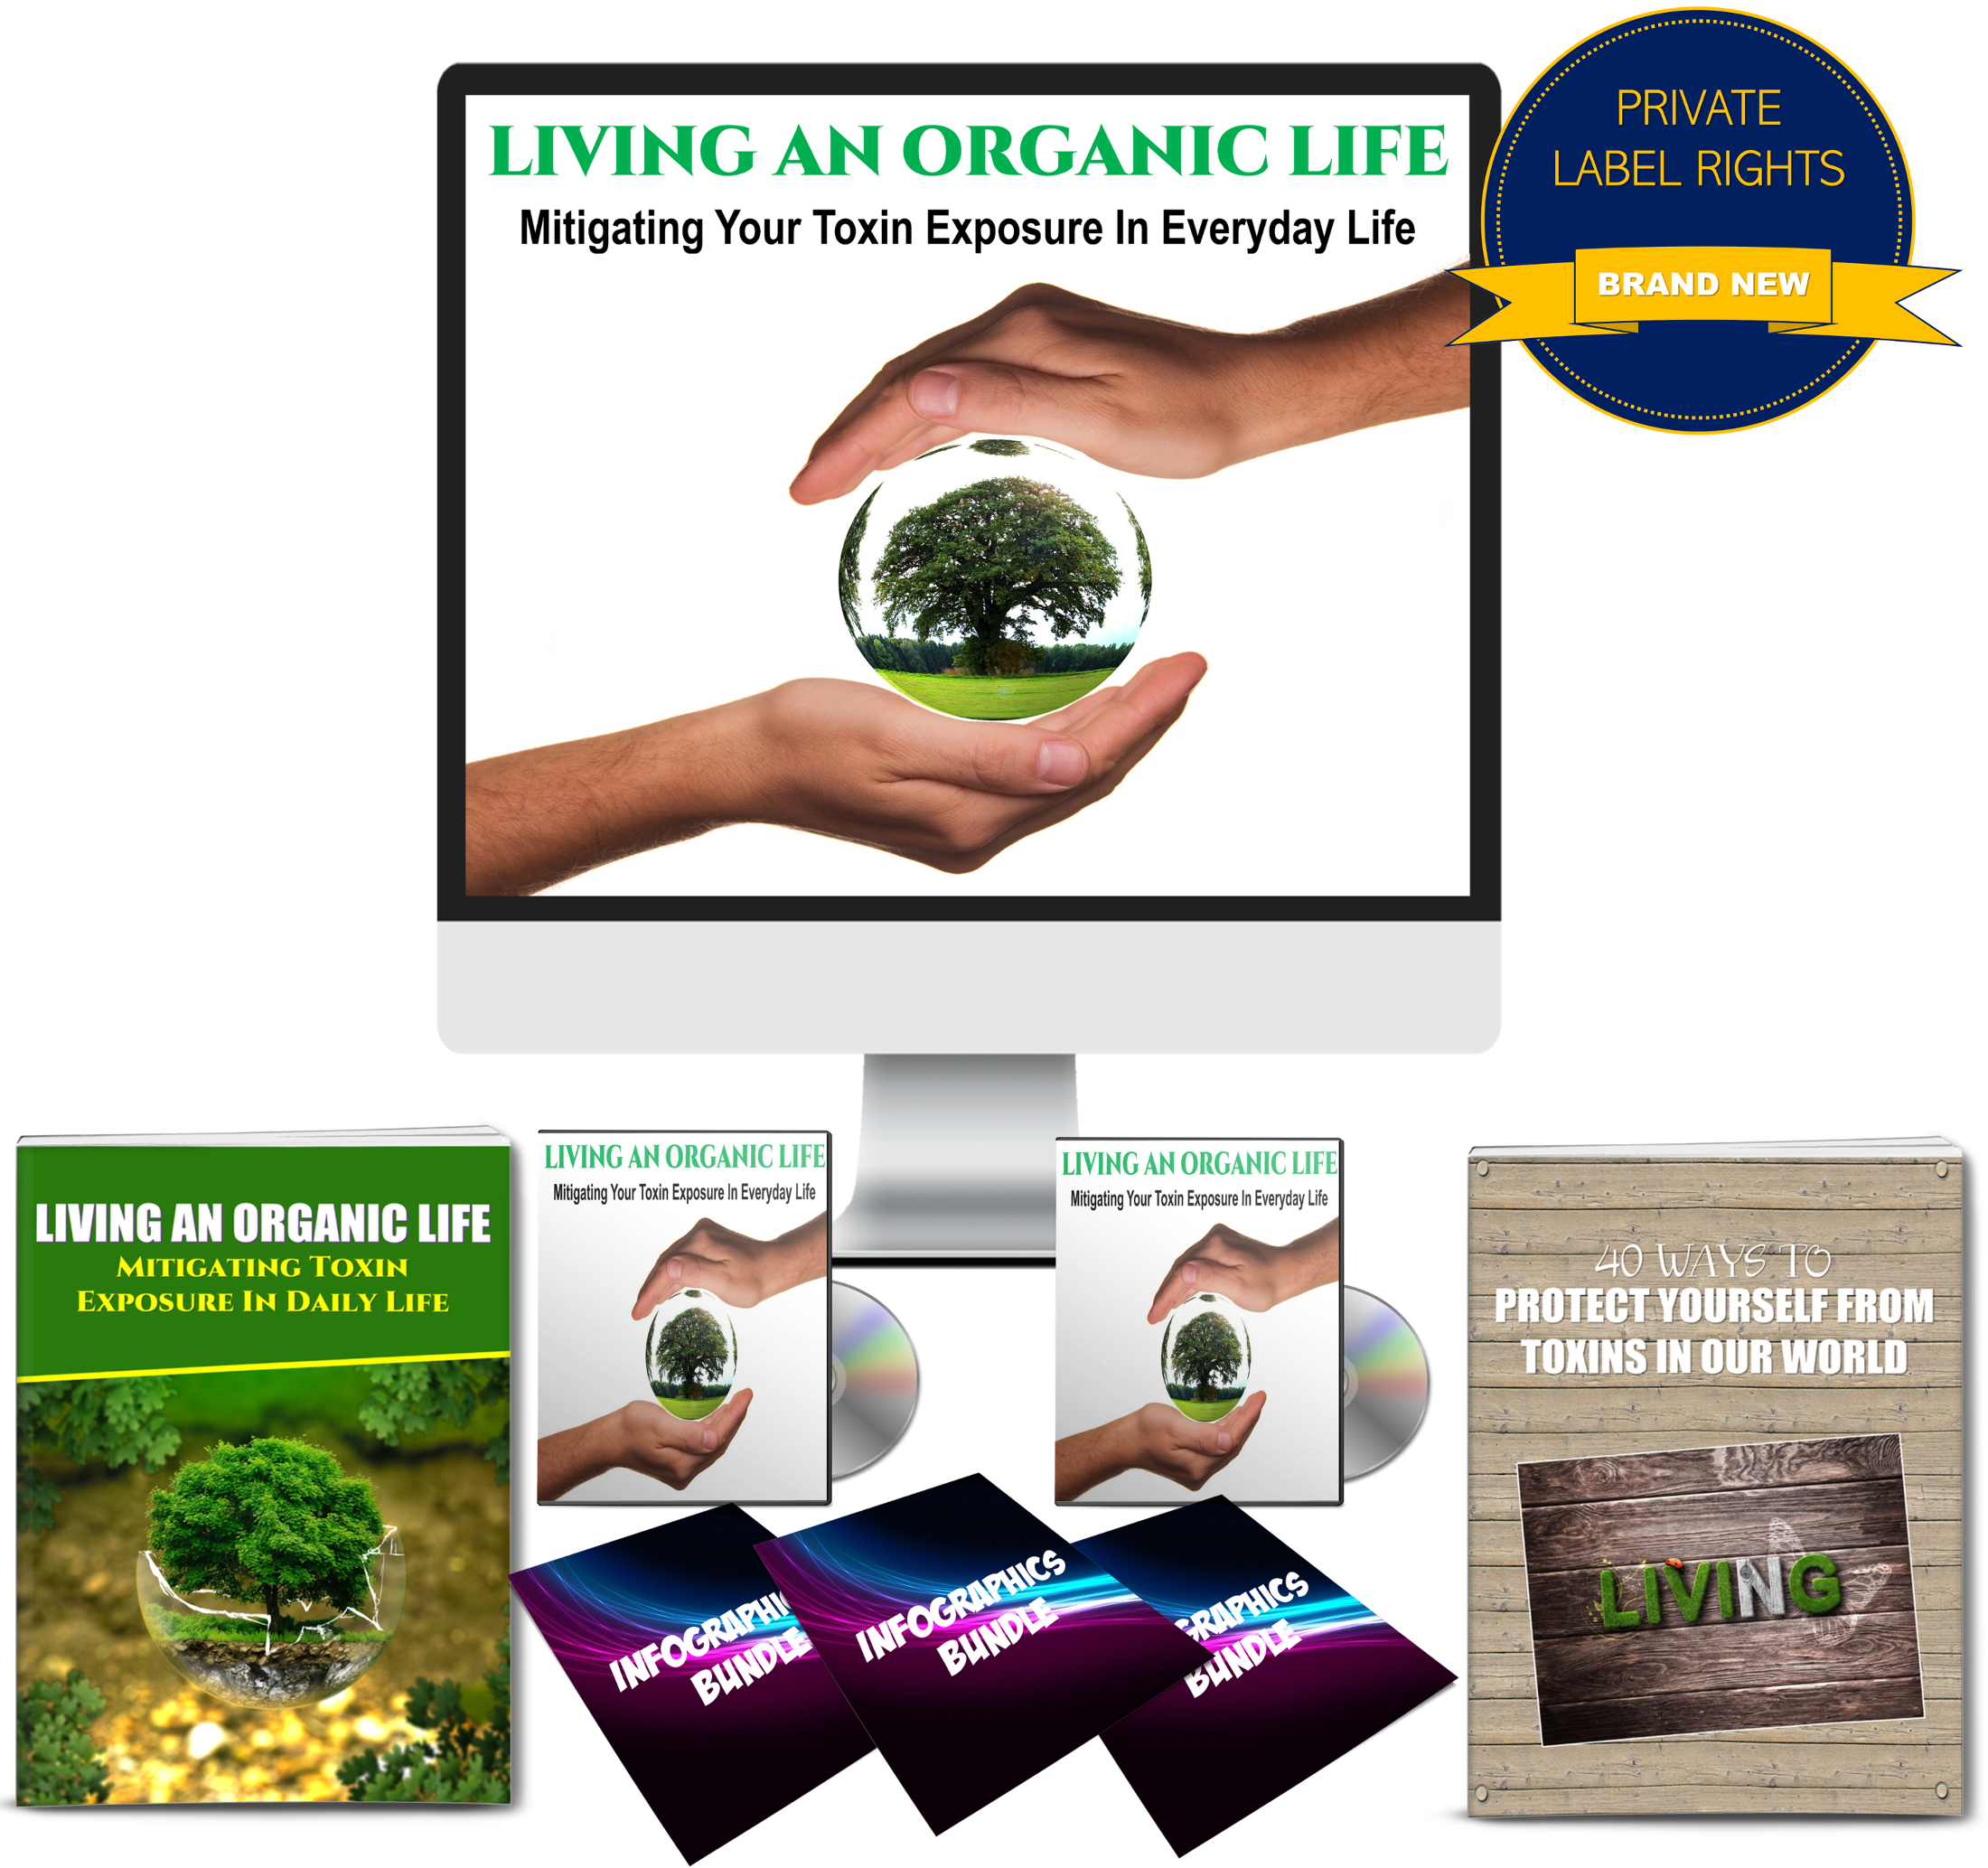 Living An Organic Life: Mitigating Toxin Exposure Content with PLR Rights